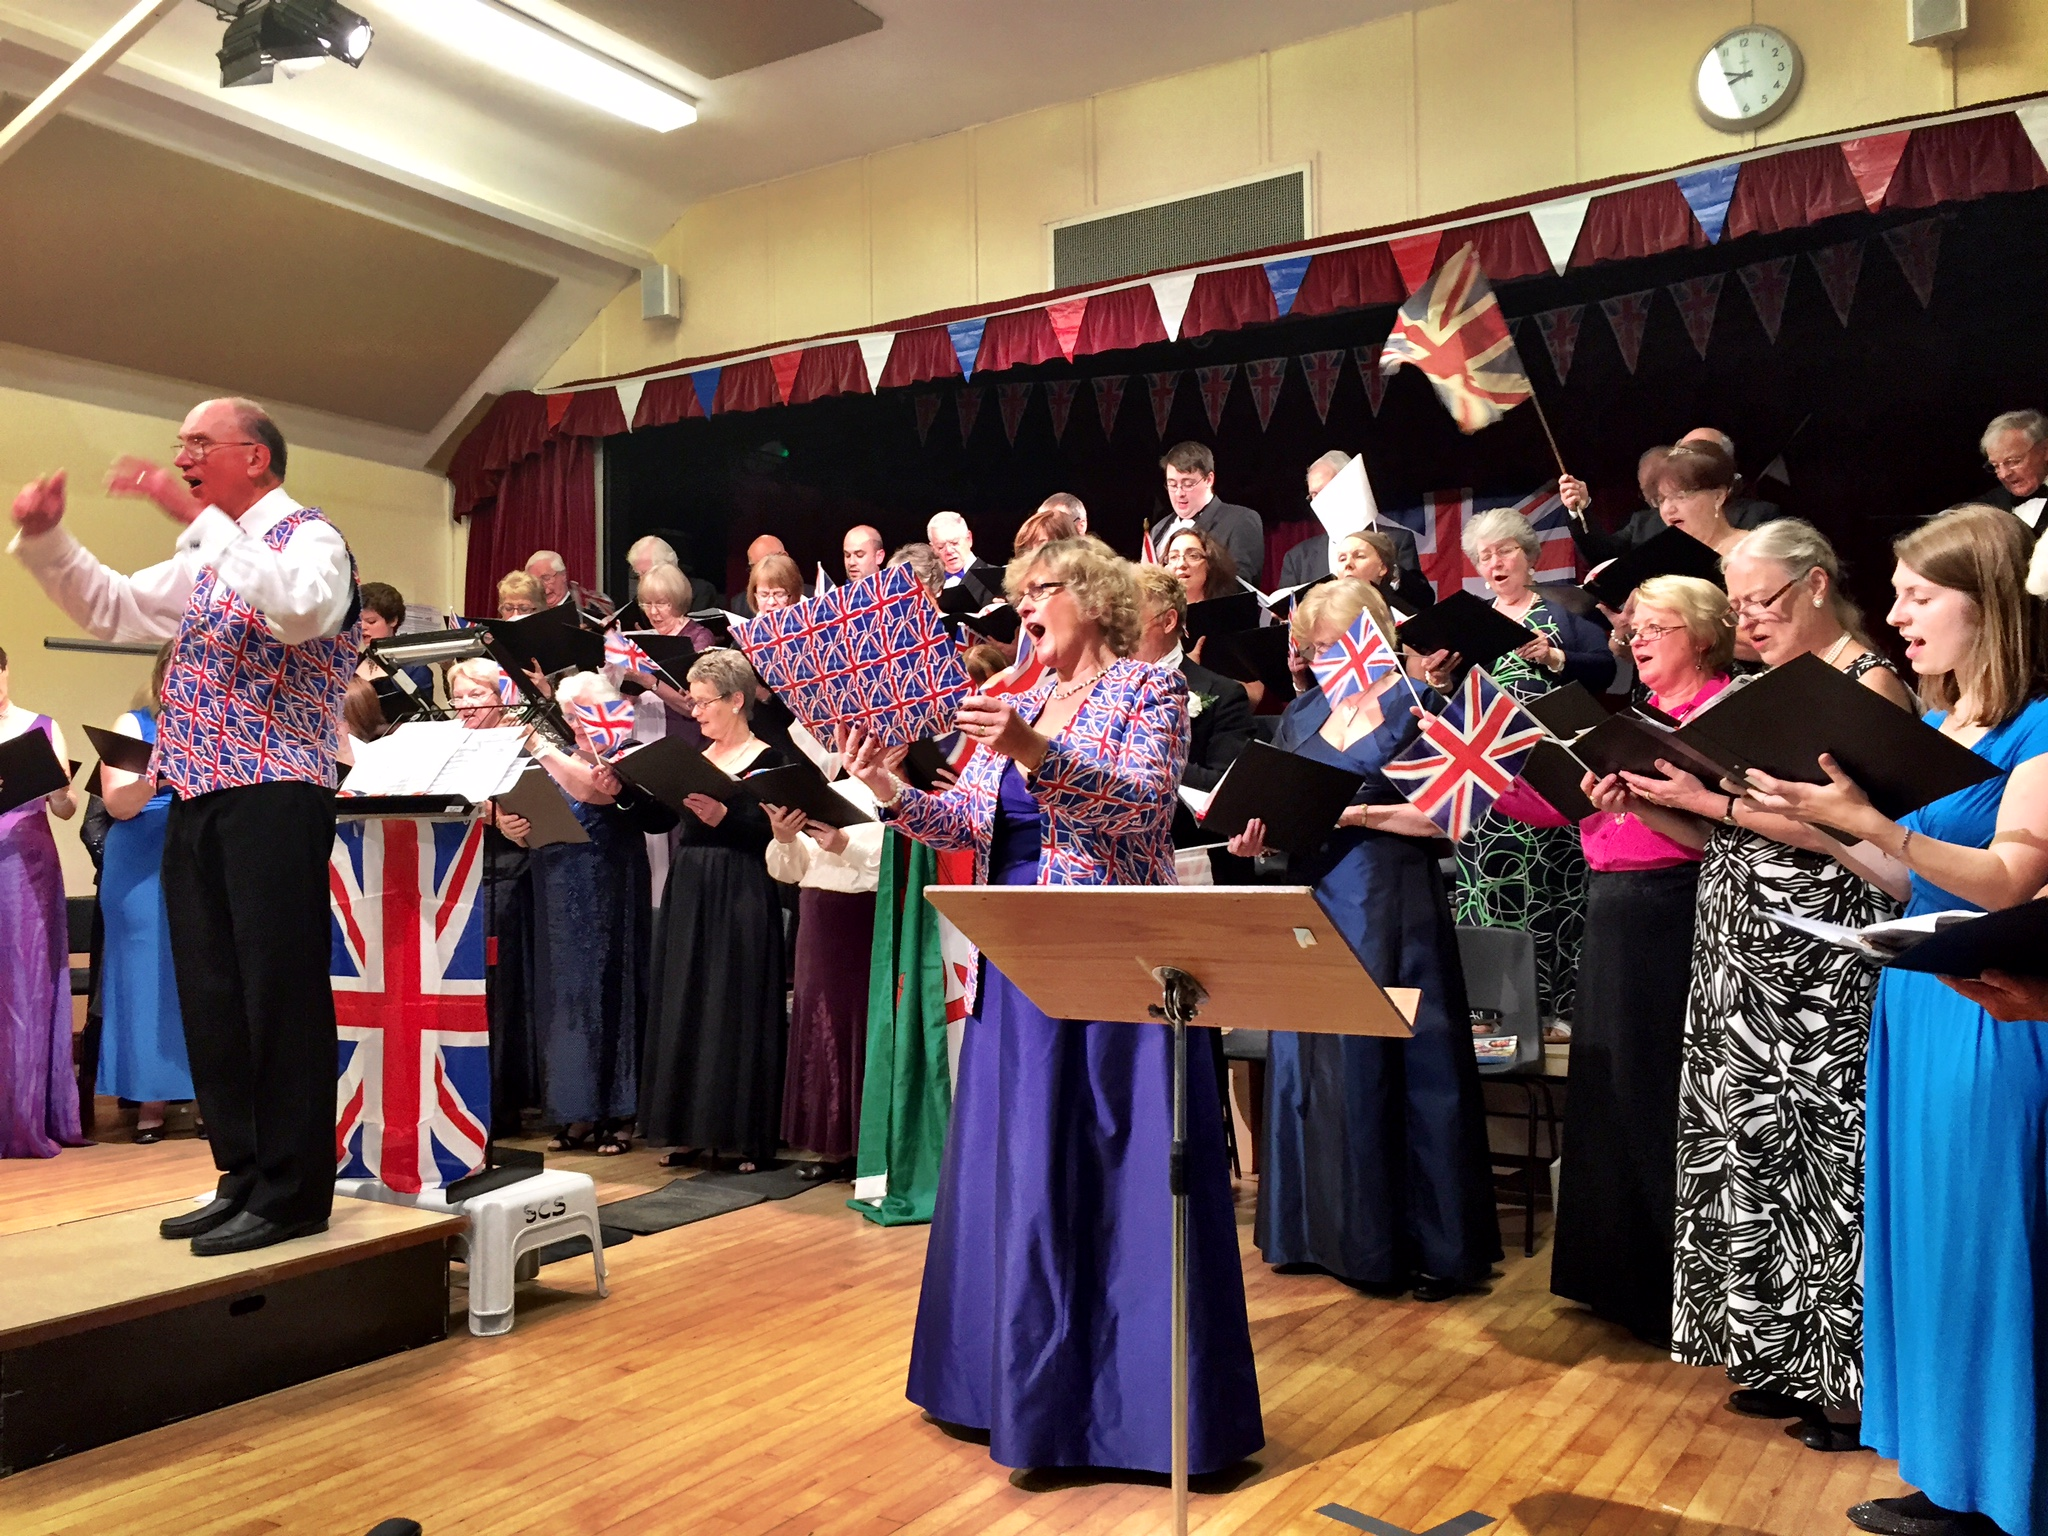 Rule Britannia - Helen Pearce and Steventon Choral Society